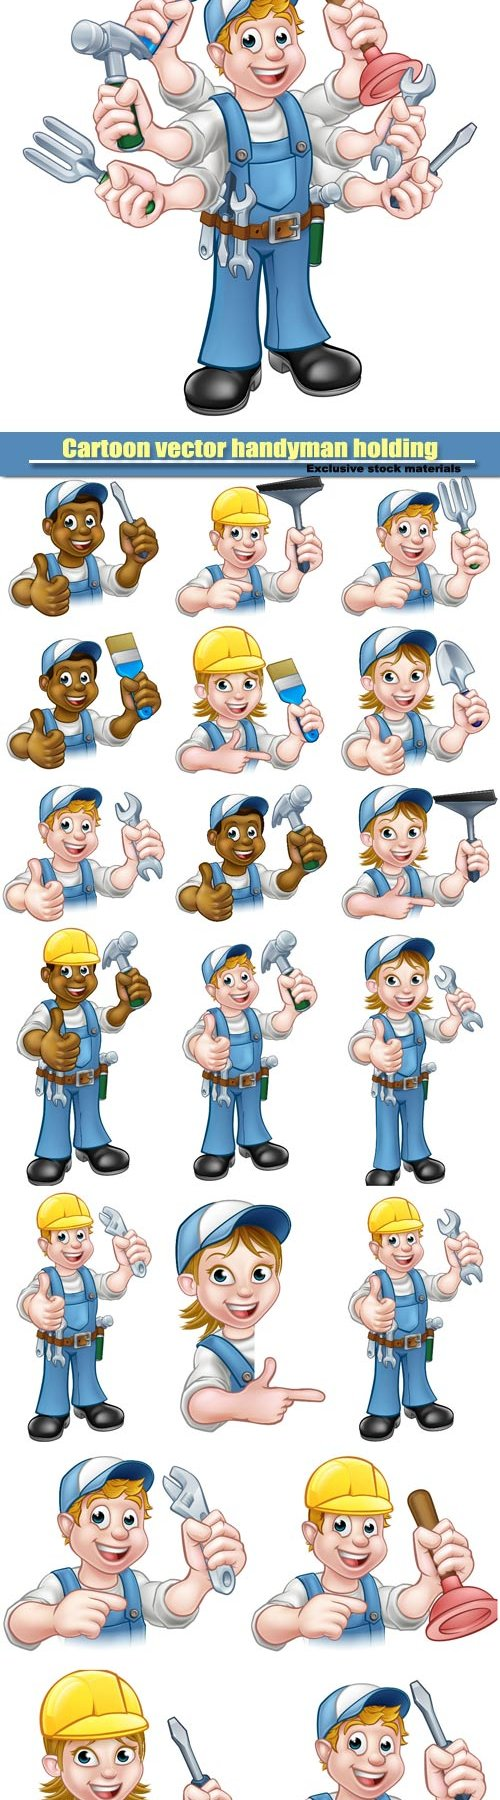 Cartoon vector handyman holding lots of tools